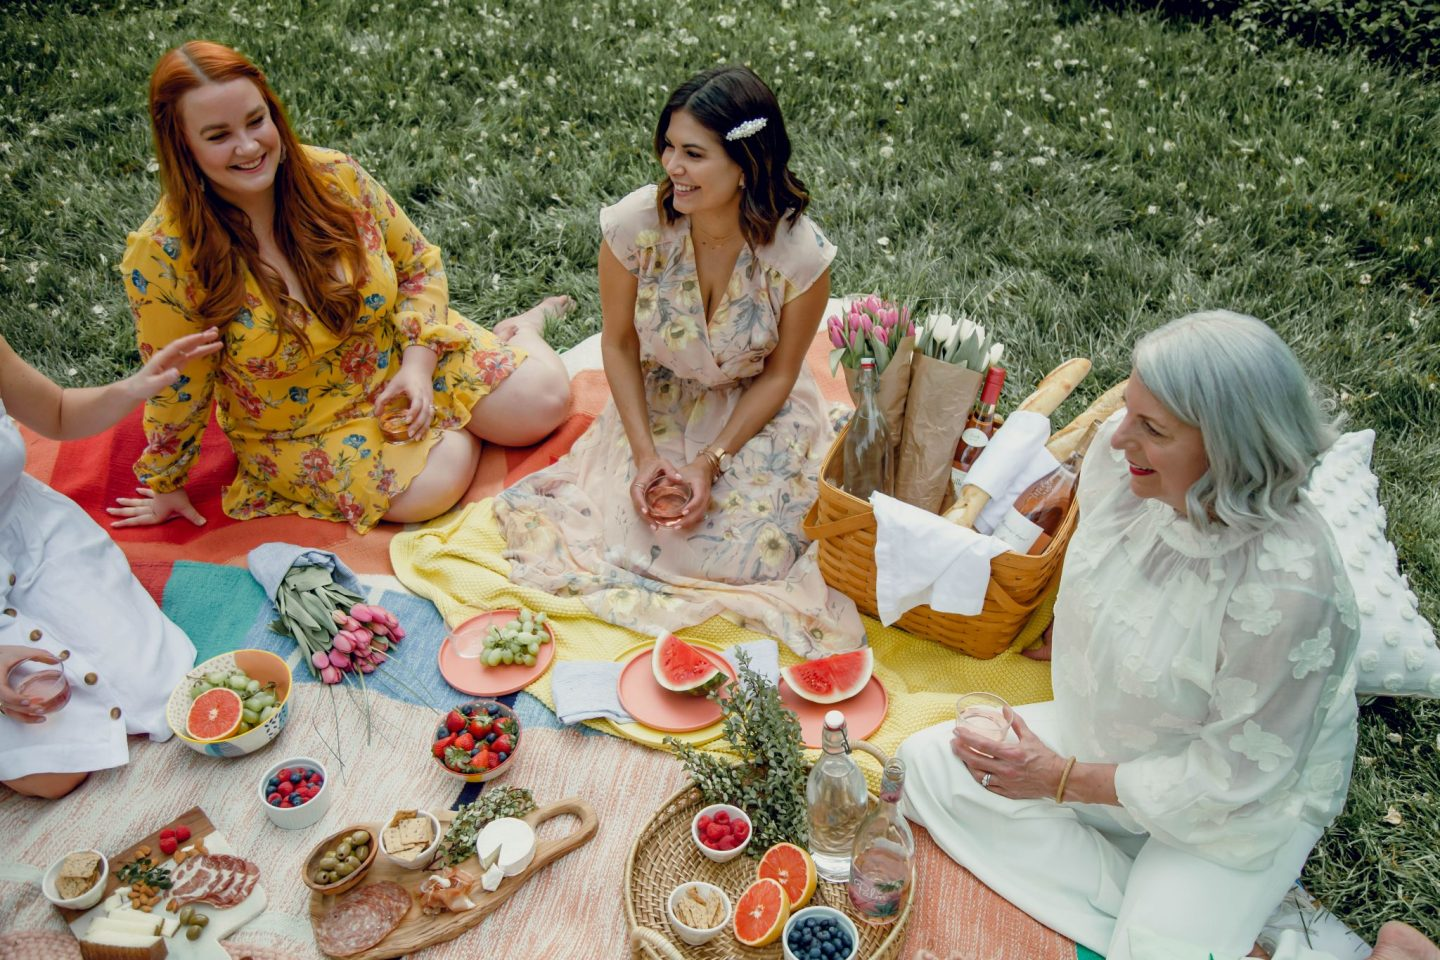 How To Host the Perfect Picnic Party - Lauren Schwaiger Lifestyle Blog